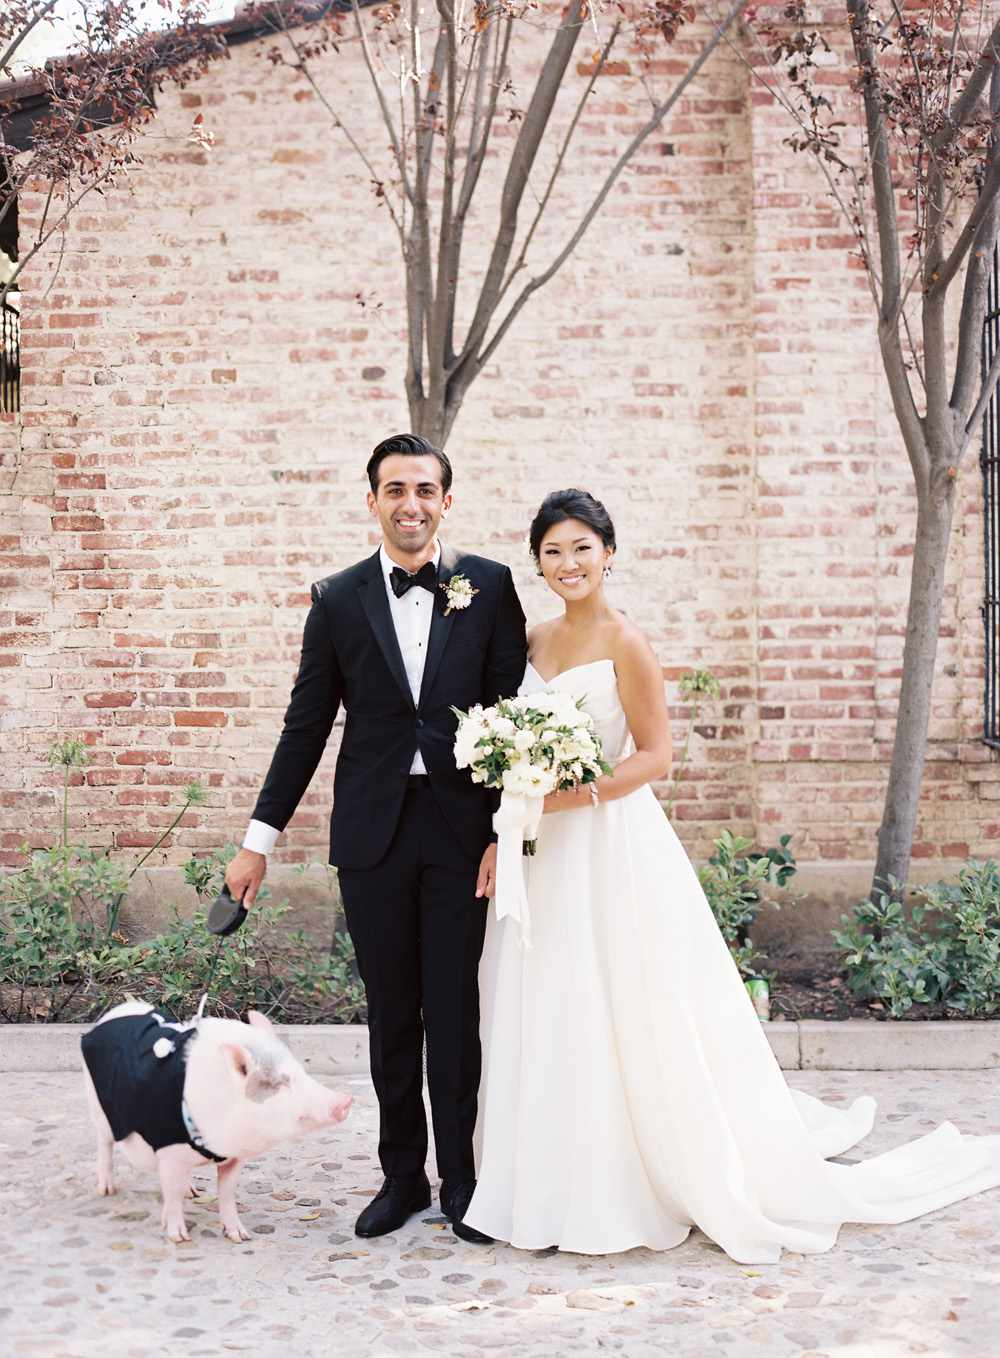 Newlyweds with pig